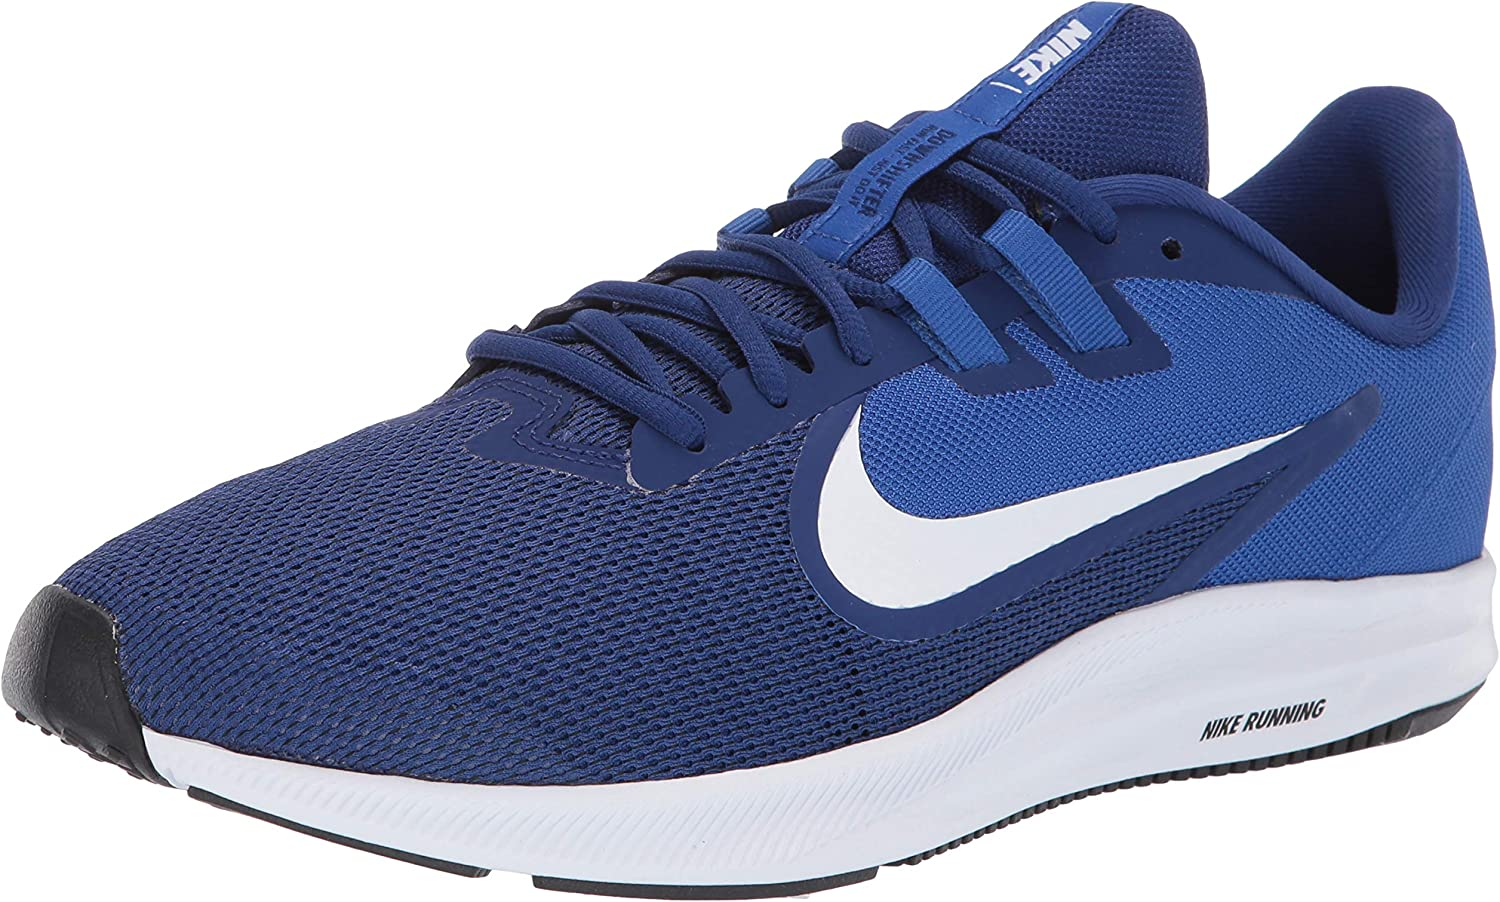 Nike Men's Downshifter 9 Running Shoe, deep royal blue/white - game royal,...